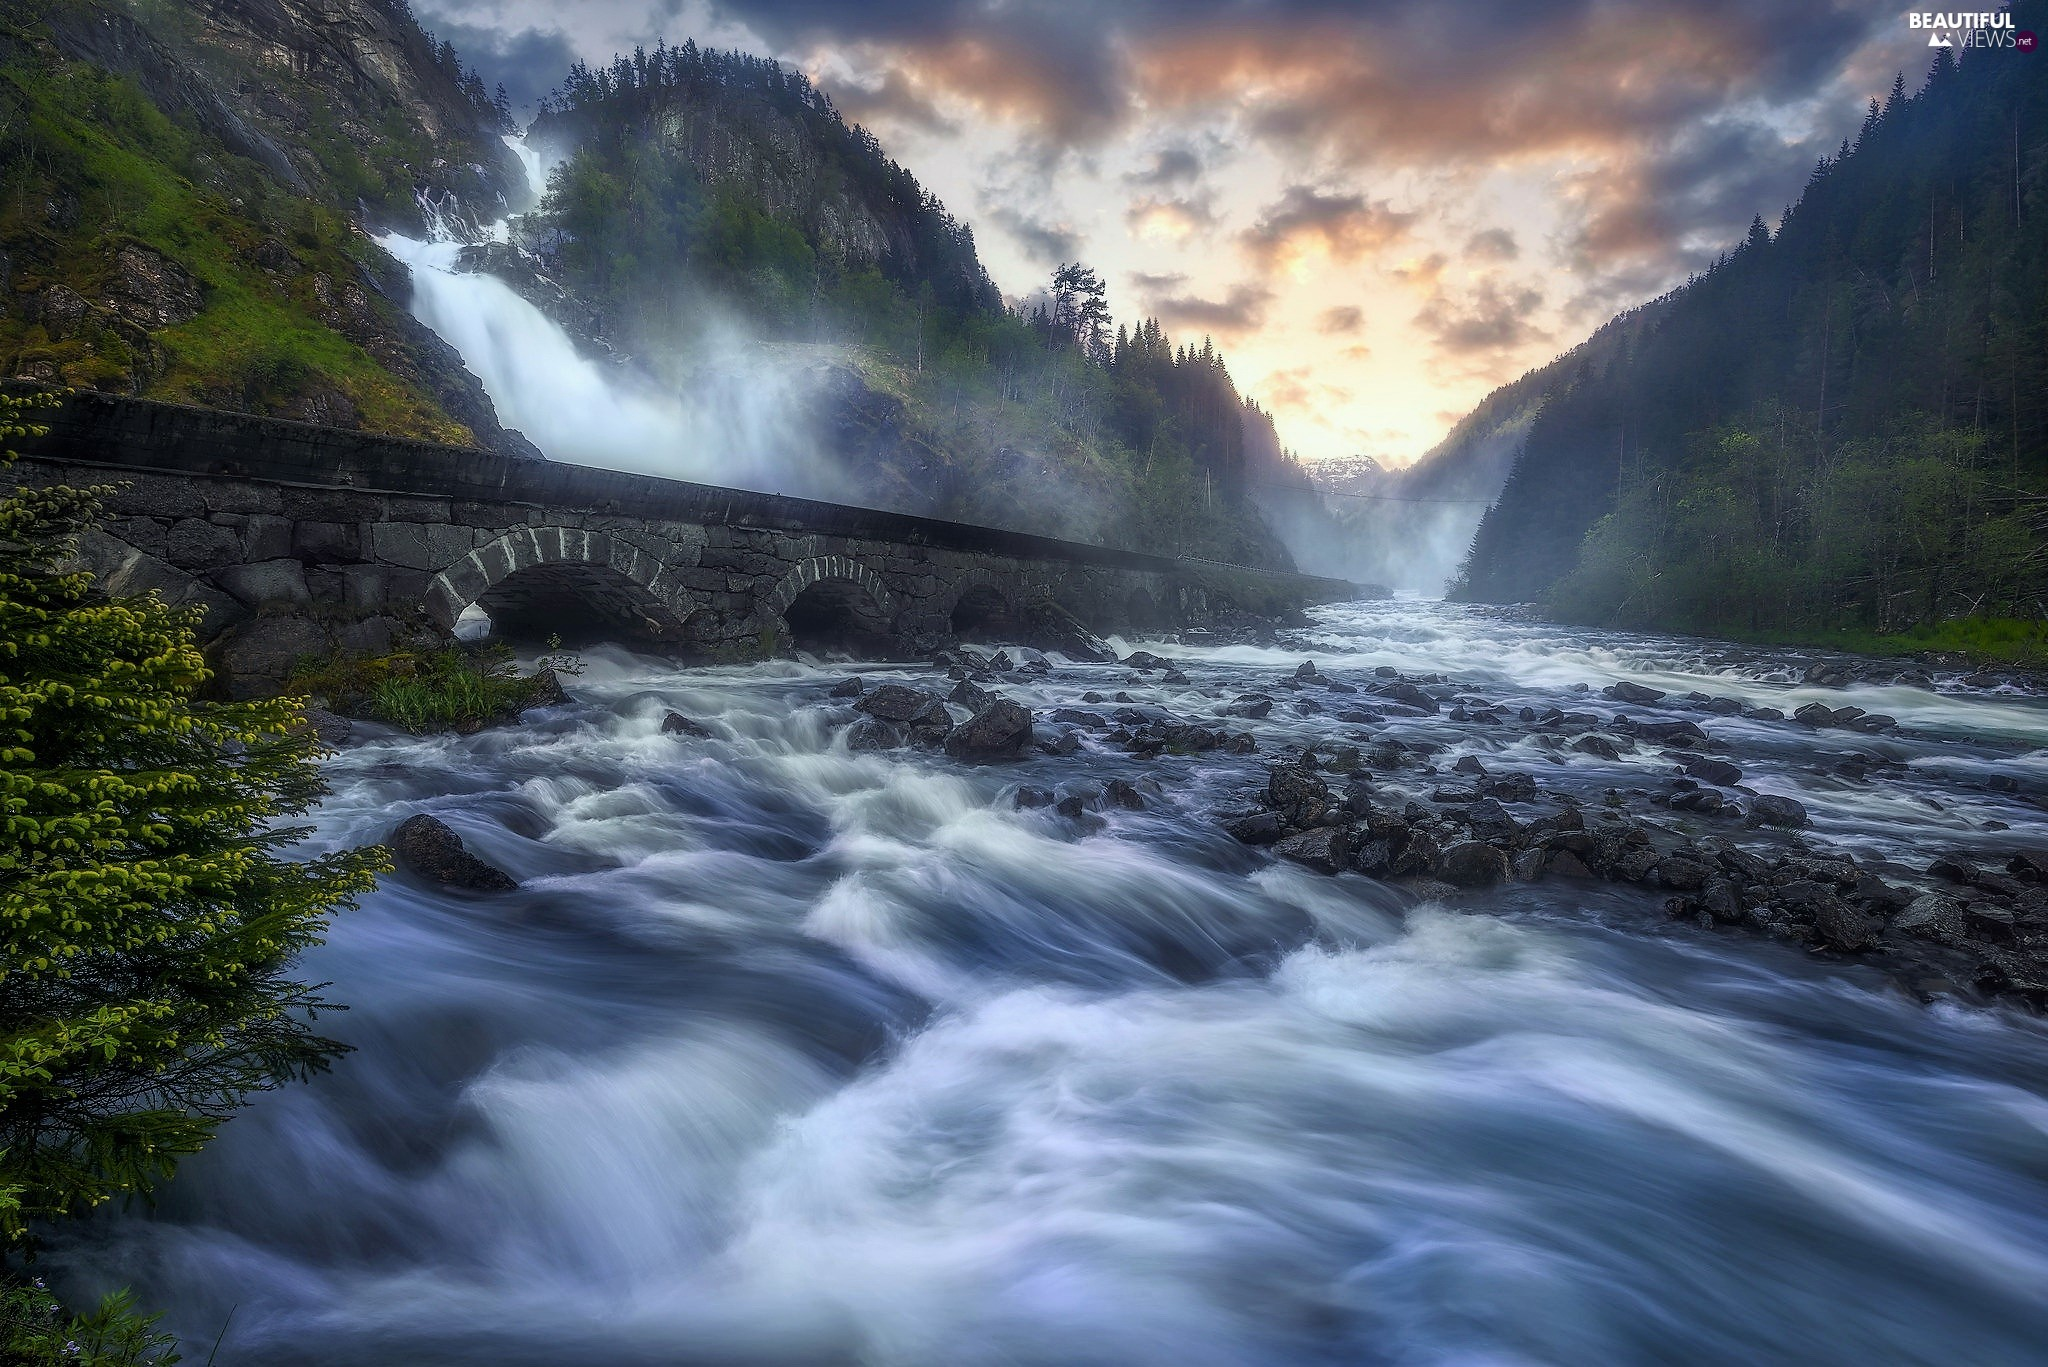 forest, Mountains, River, Odda Commune, rocks, Latefossen Waterfall, bridge, Norway, clouds, Stones